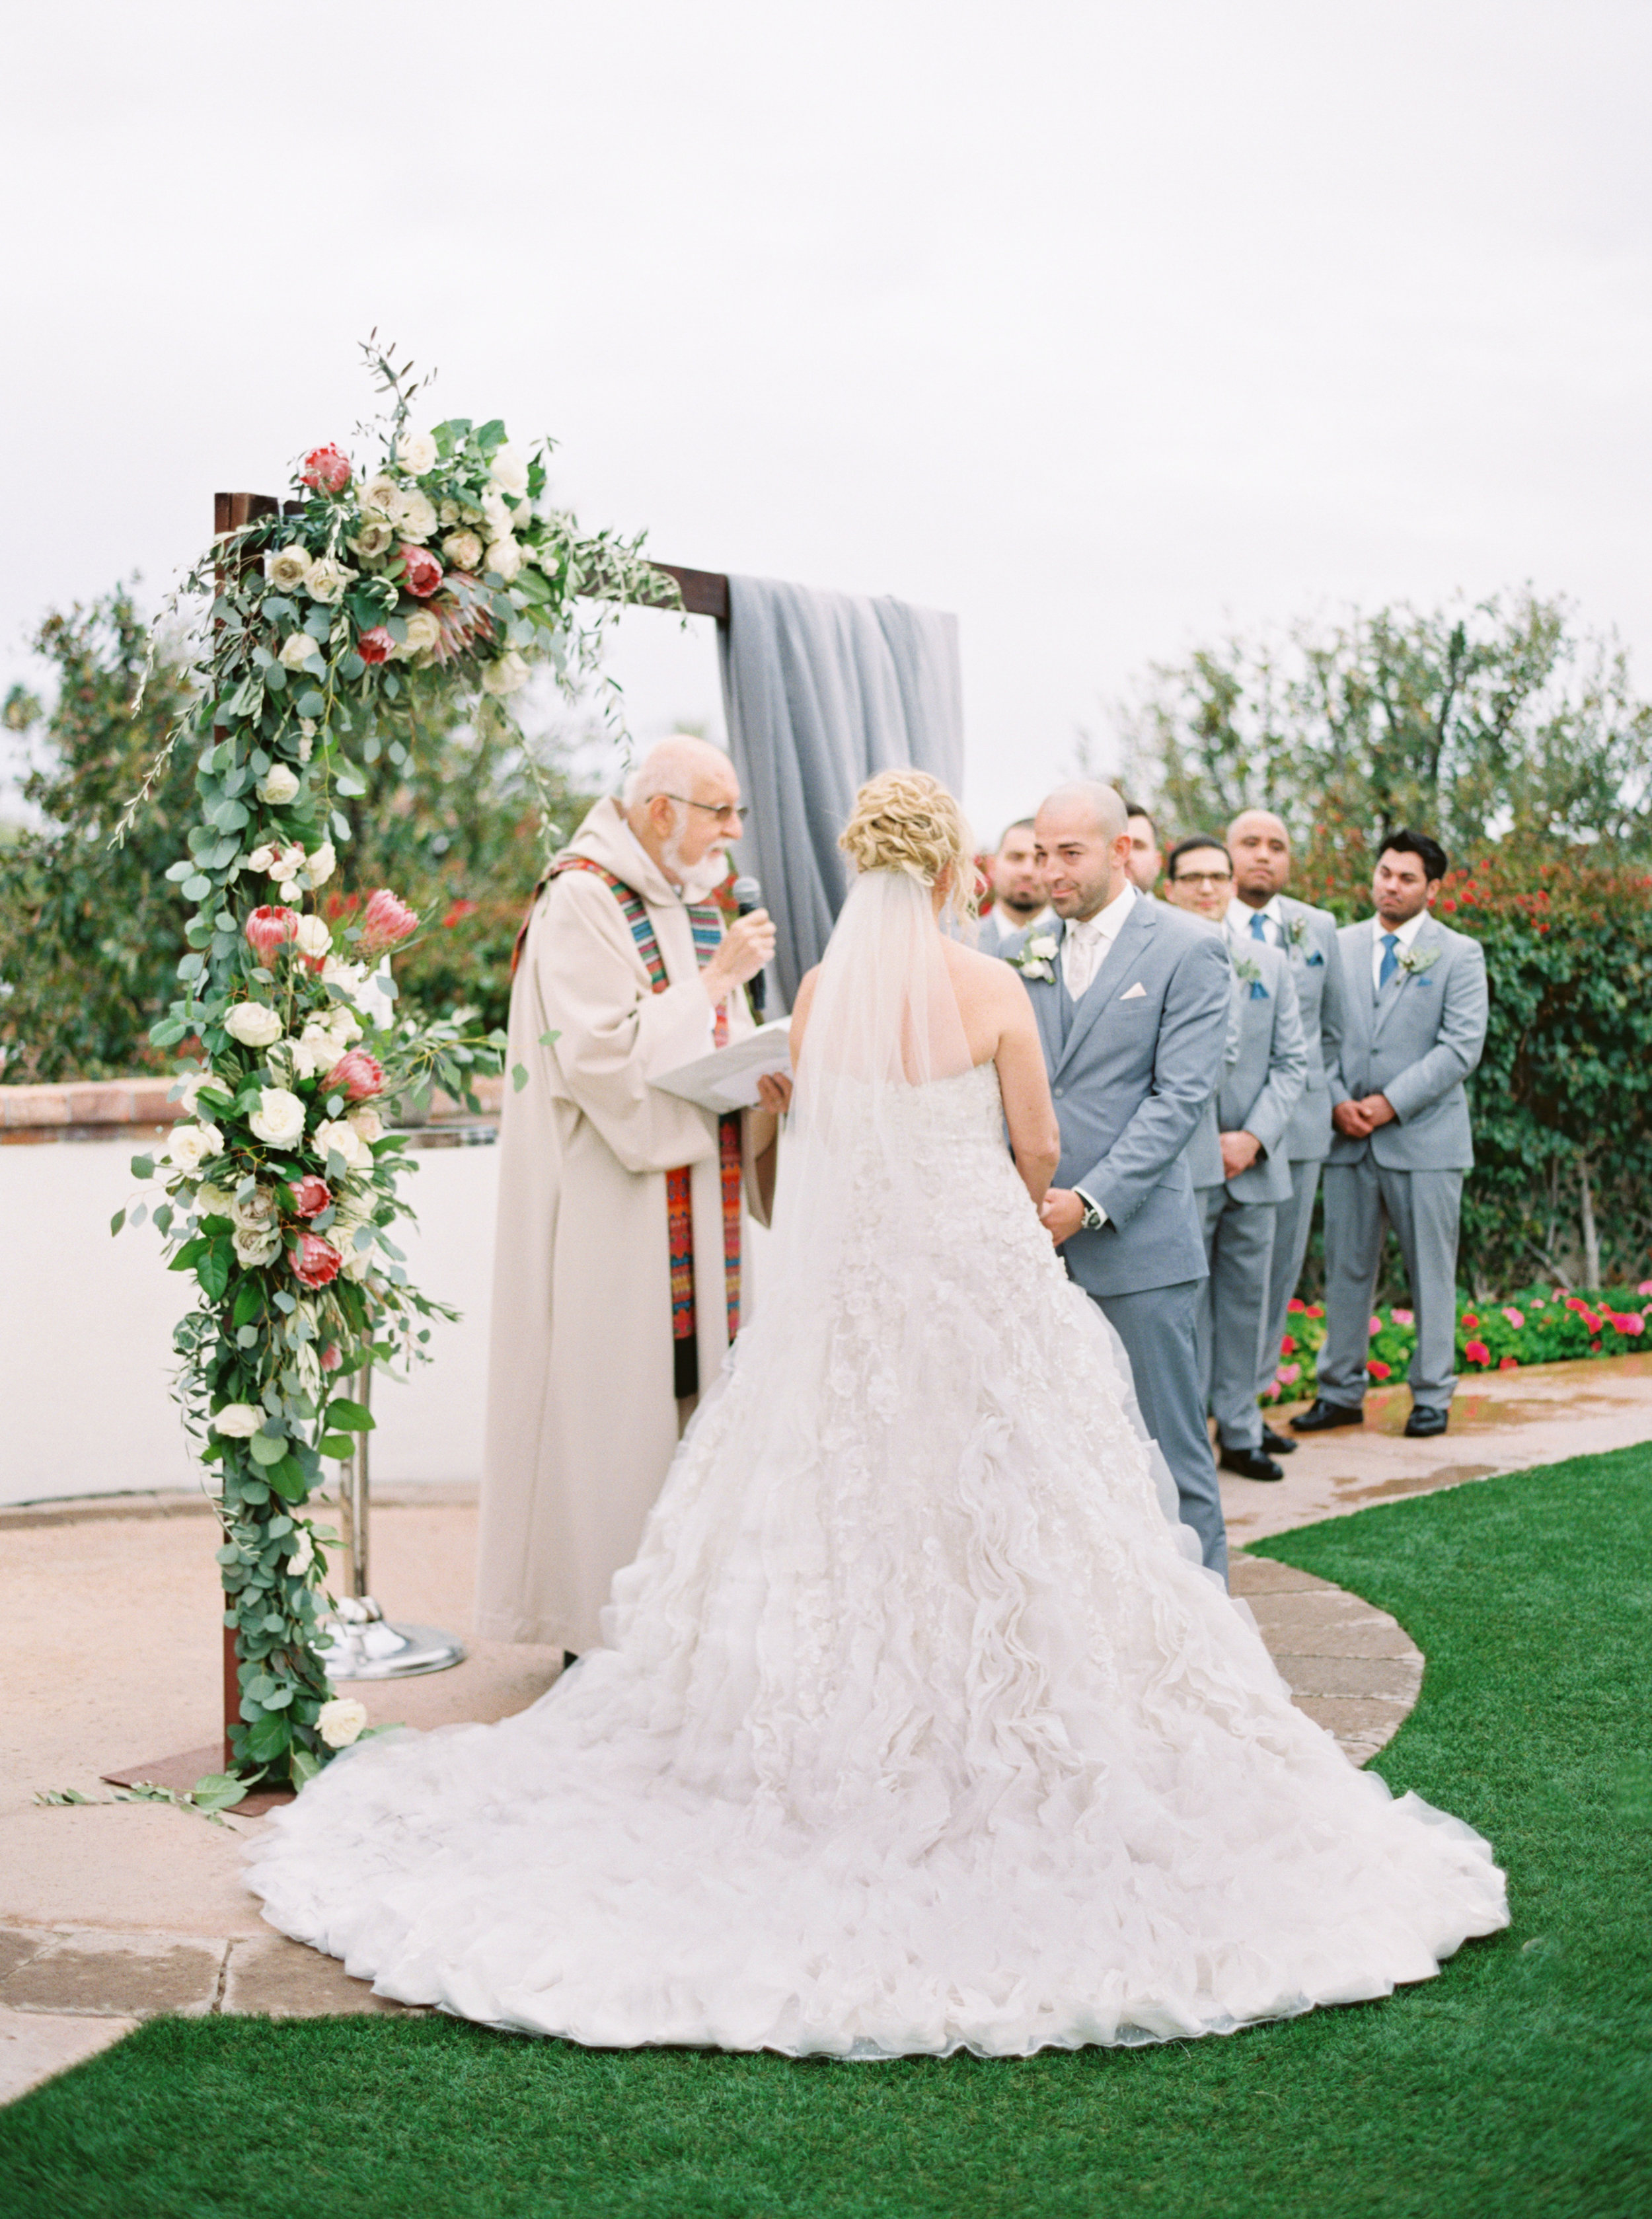 29 bride groom ceremony priest wedding ceremony outdoor wedding rain on wedding day floral arch wedding arch Life Design Events photos by Melissa Jill Photography.jpg